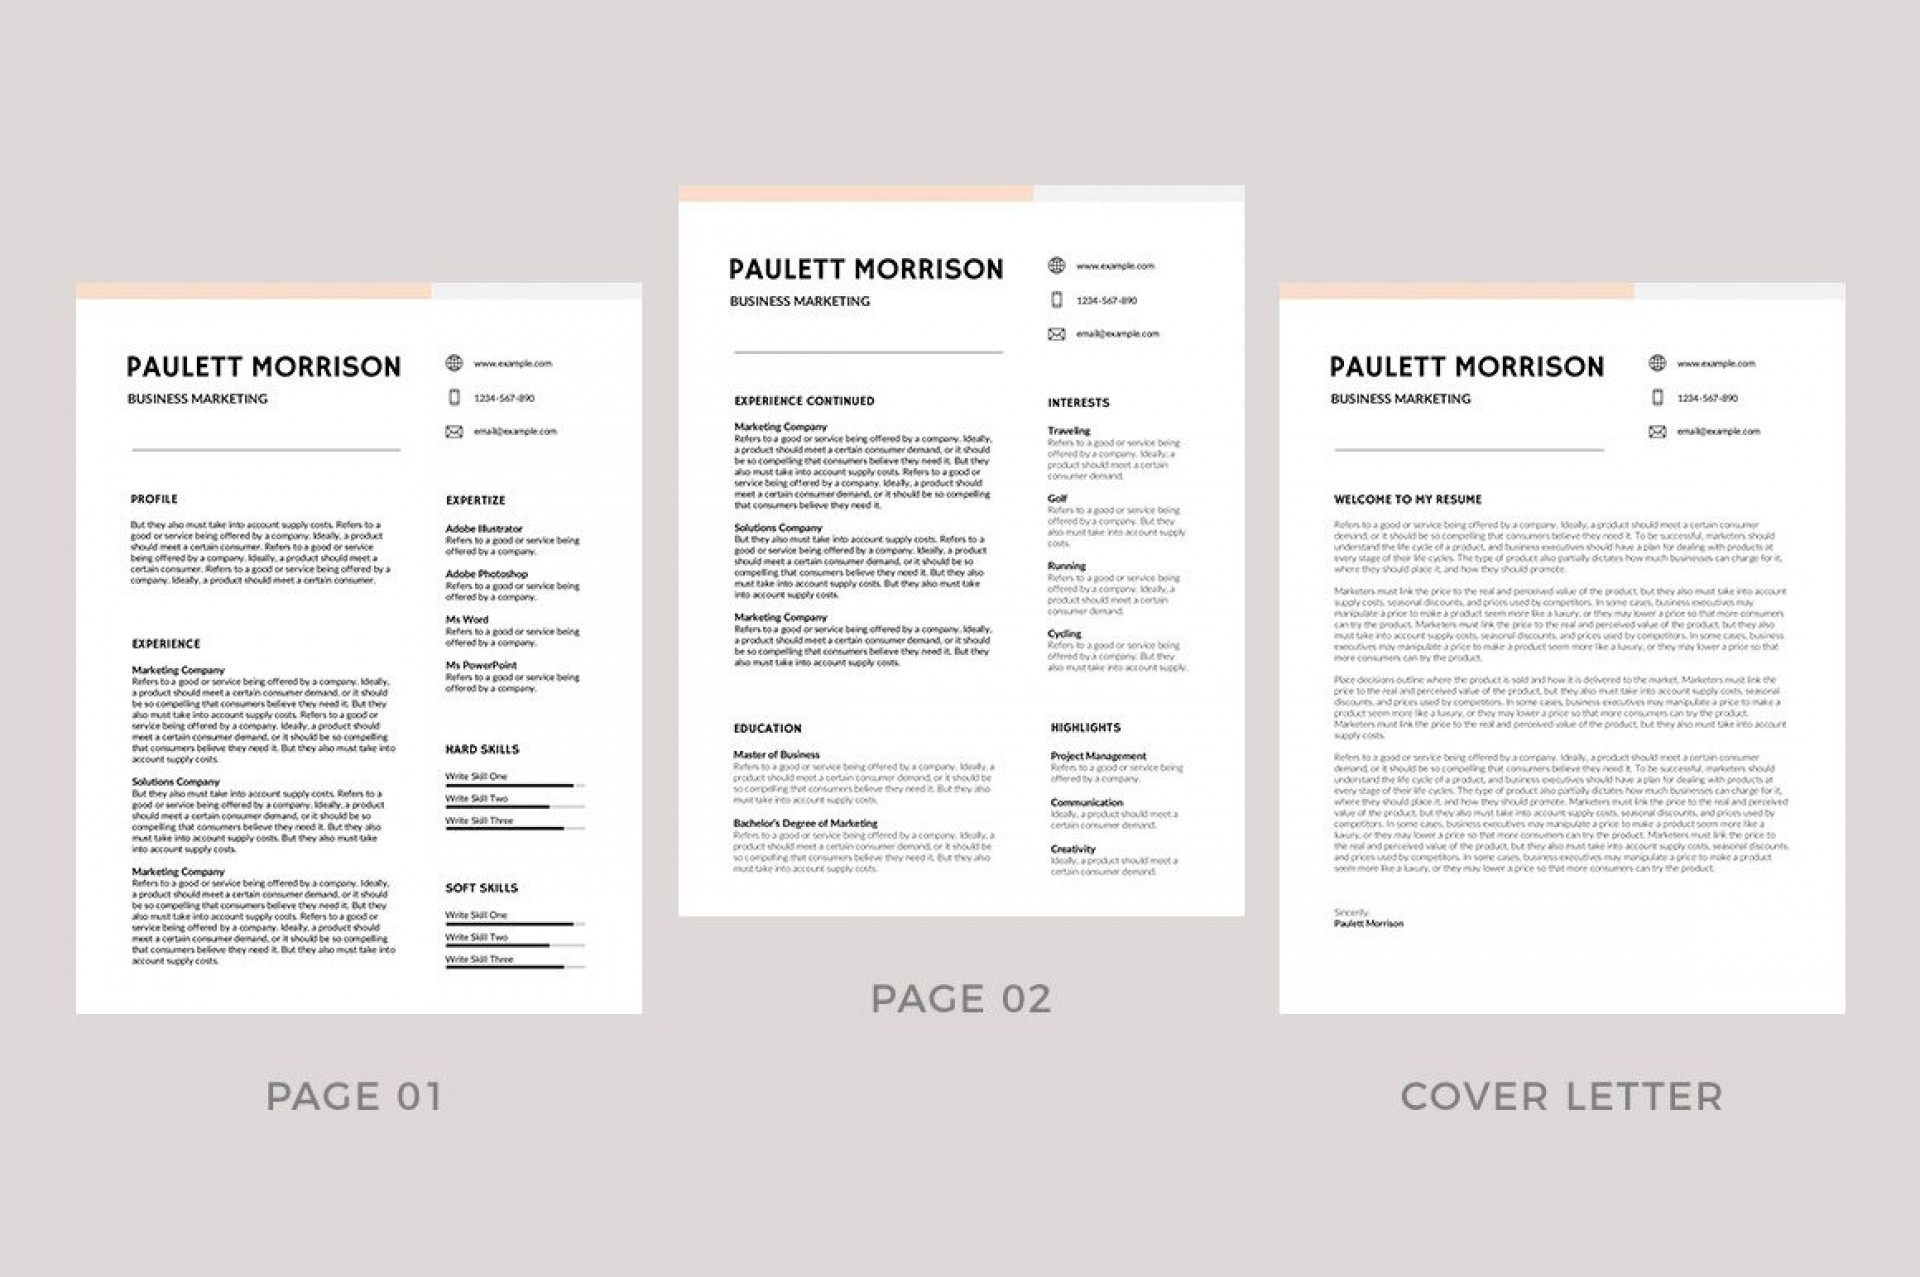 009 Fearsome Professional Resume Template 2019 Free Download High Resolution  Cv1920